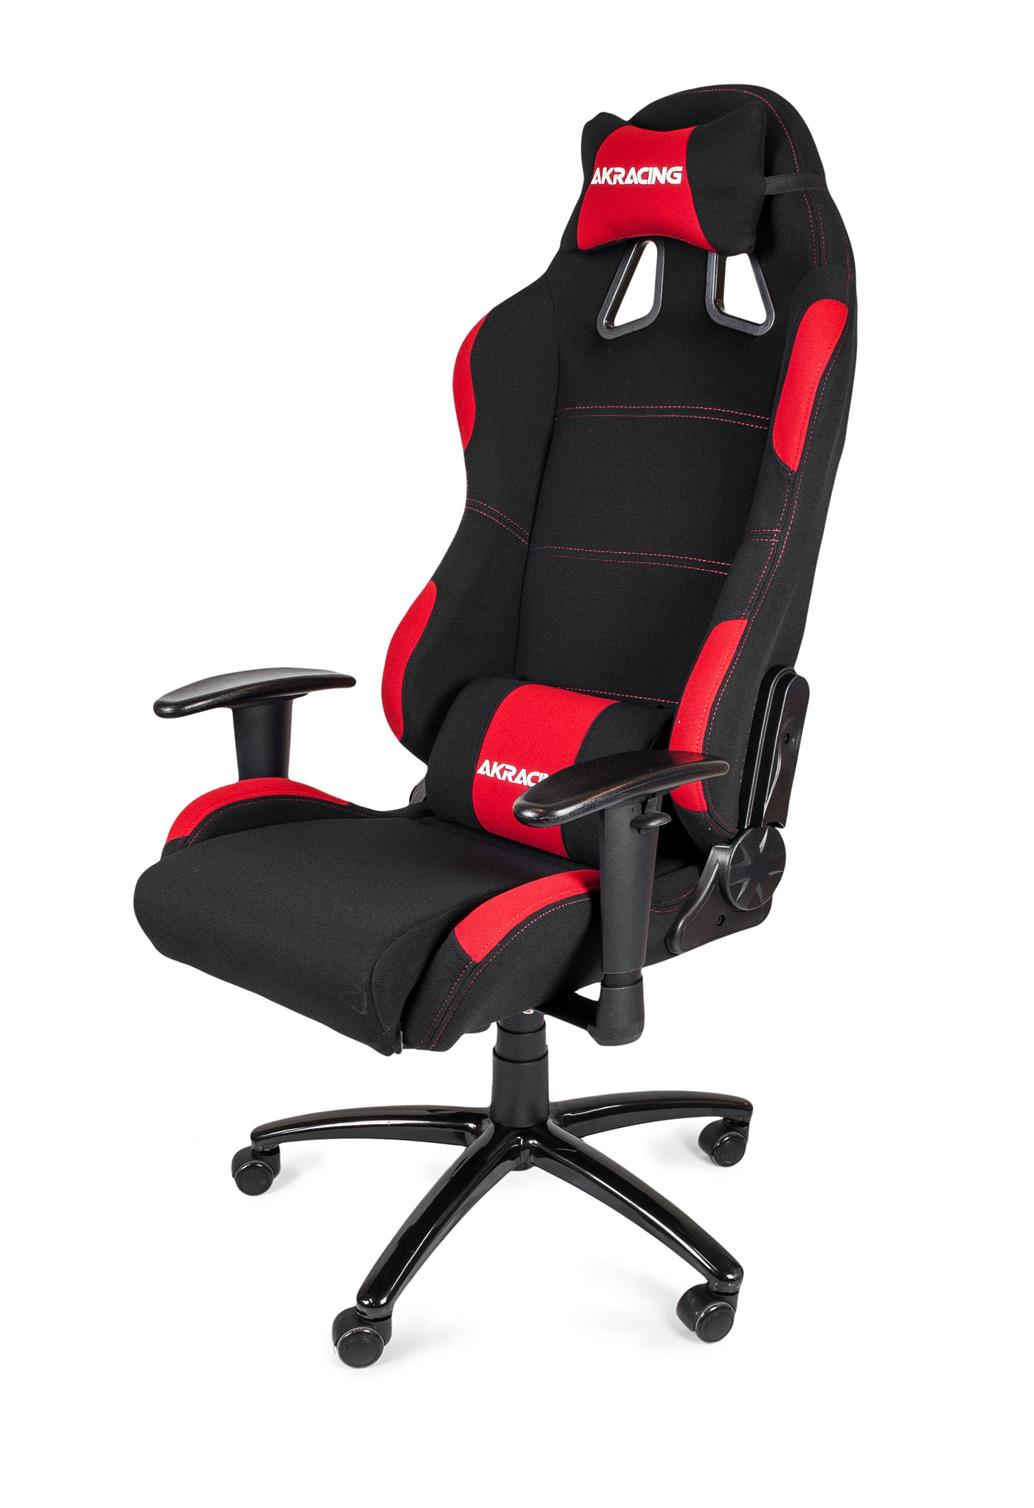 AKRACING Gaming Chair Black Red